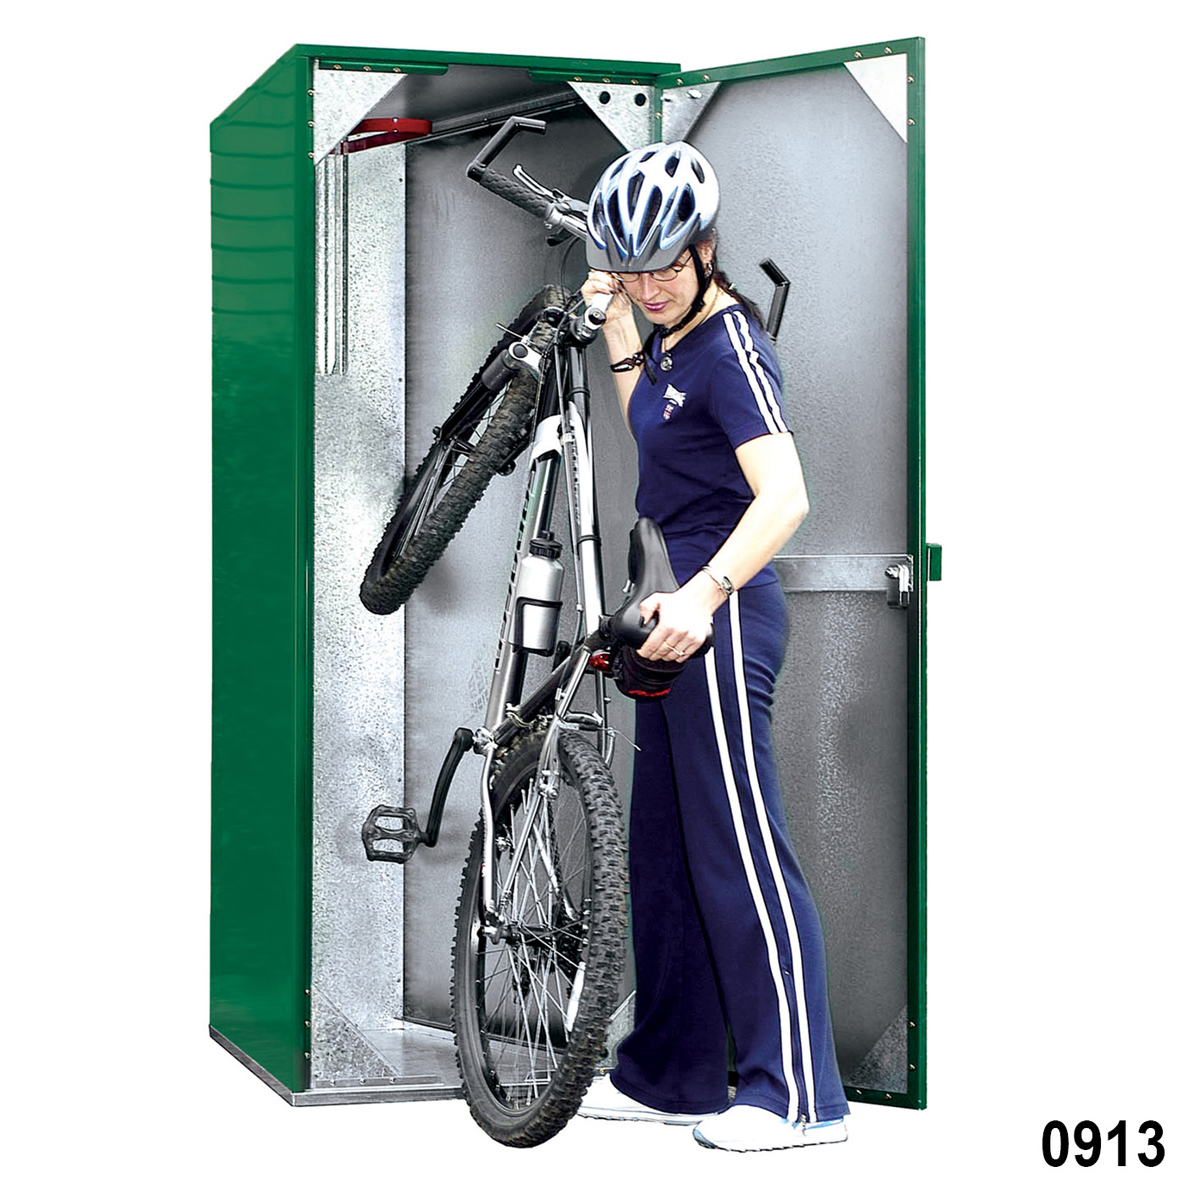 Vertical Bike Storage Locker